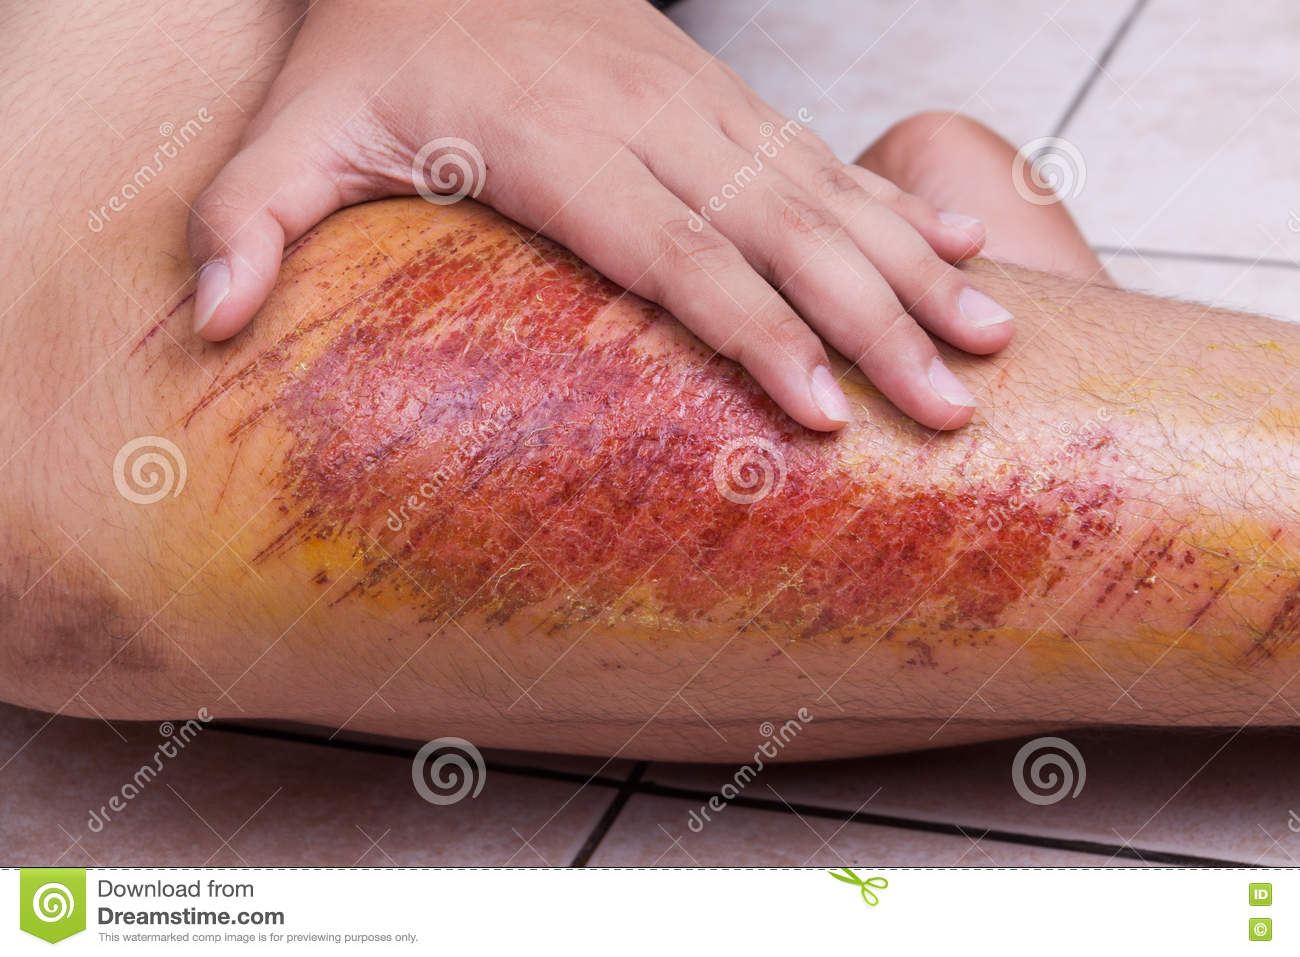 Closeup Hand Embracing Injured Knee With Painful Abrasion From F